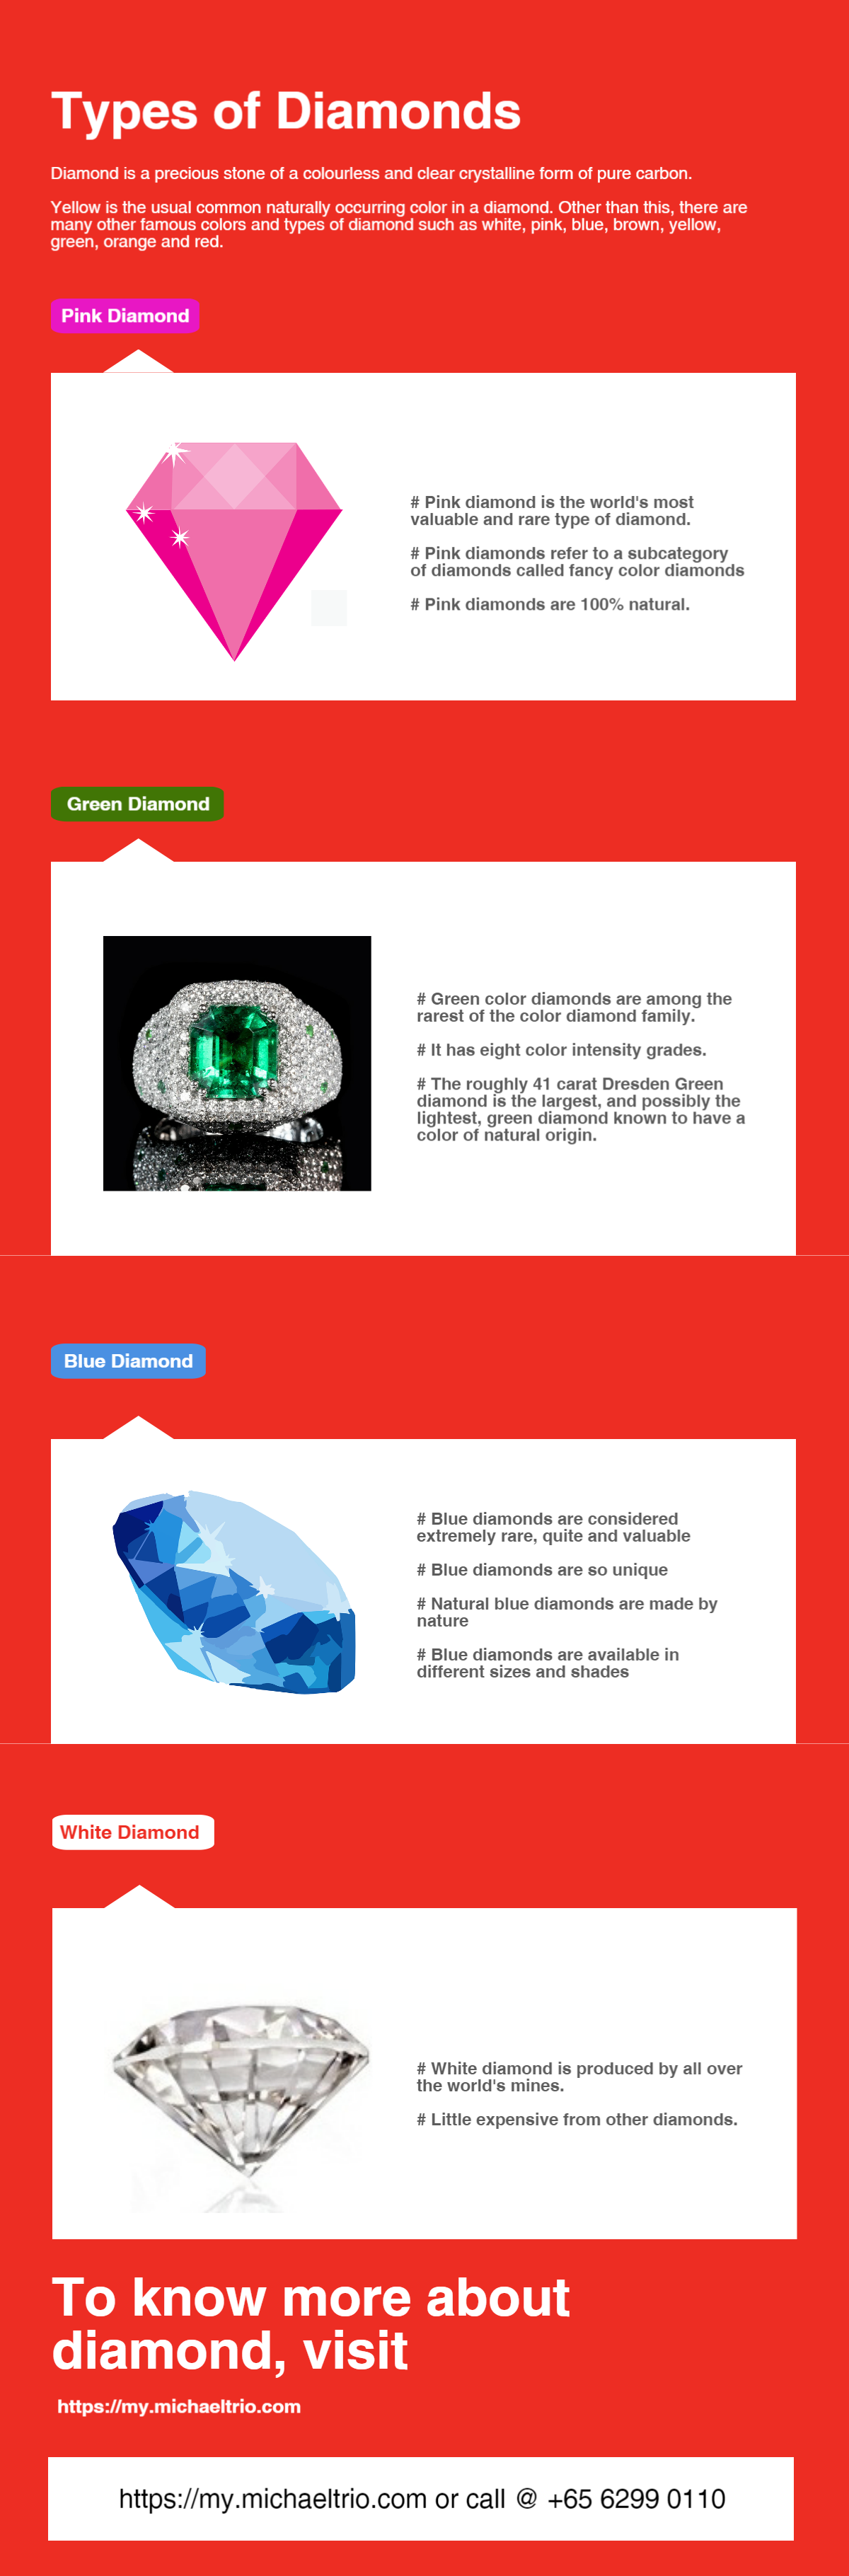 Type of Diamond - Shapes, Colors, Cuts and Carets - ThingLink